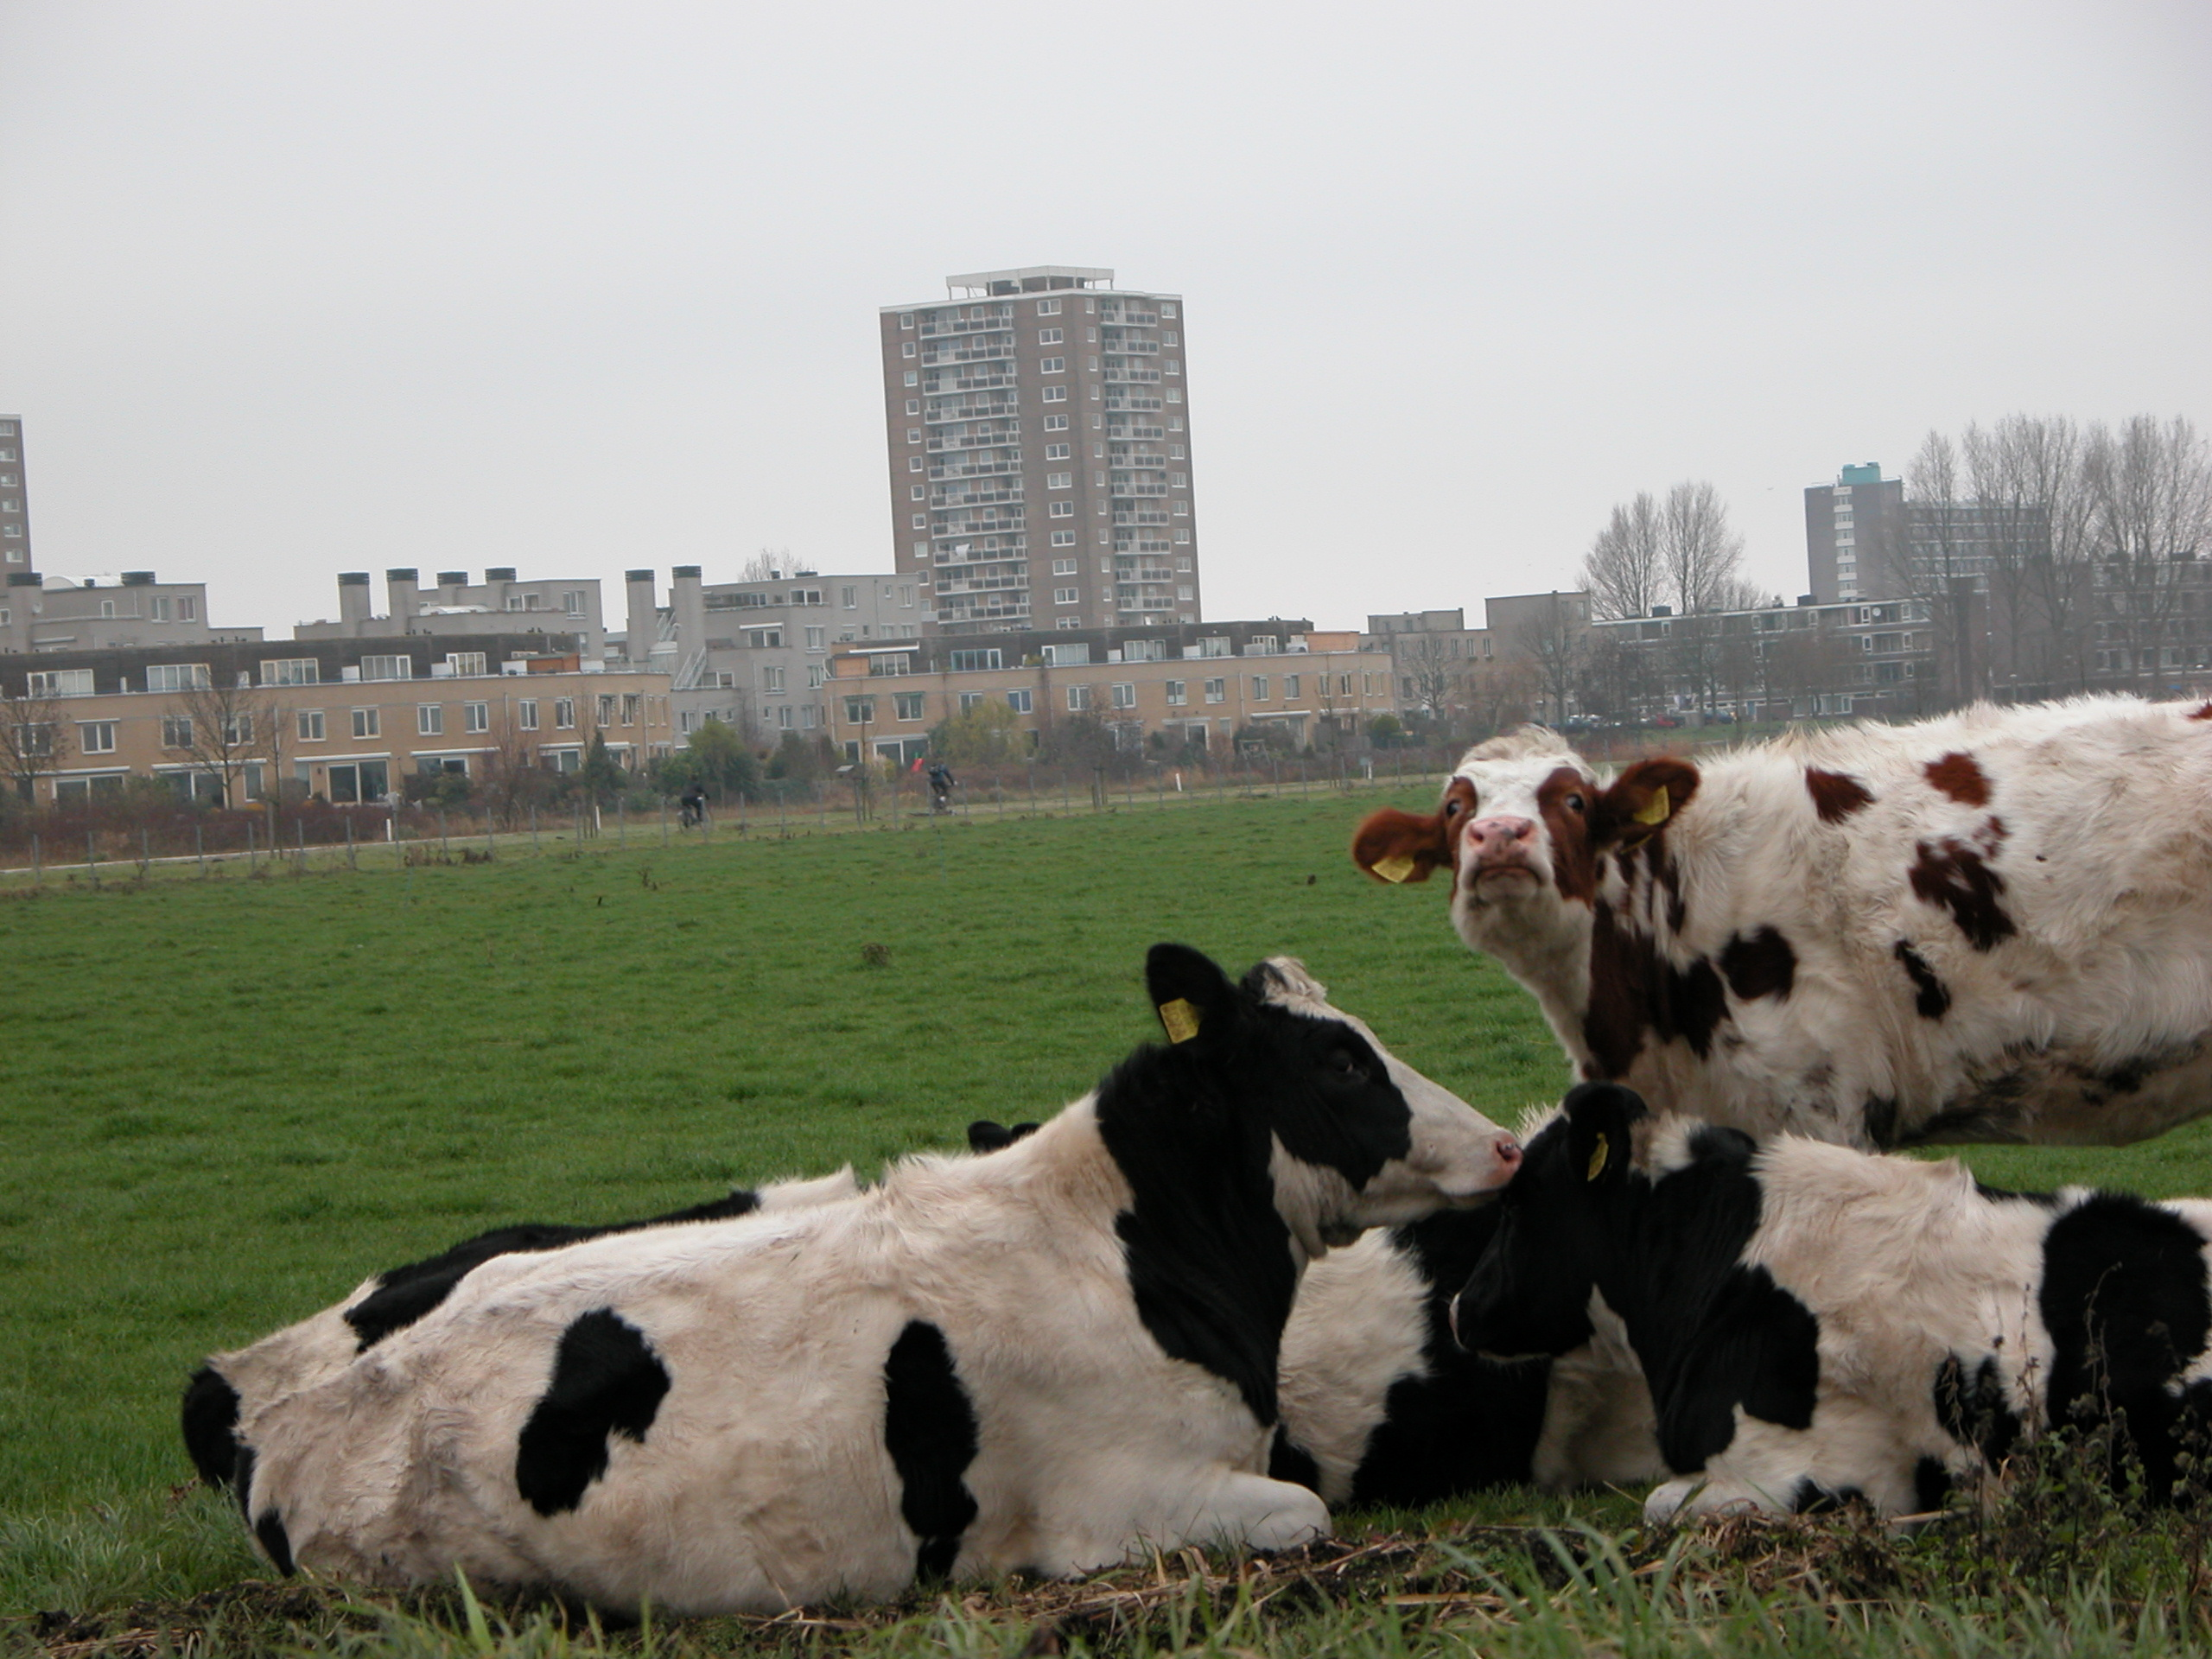 cows in front of buildings city end